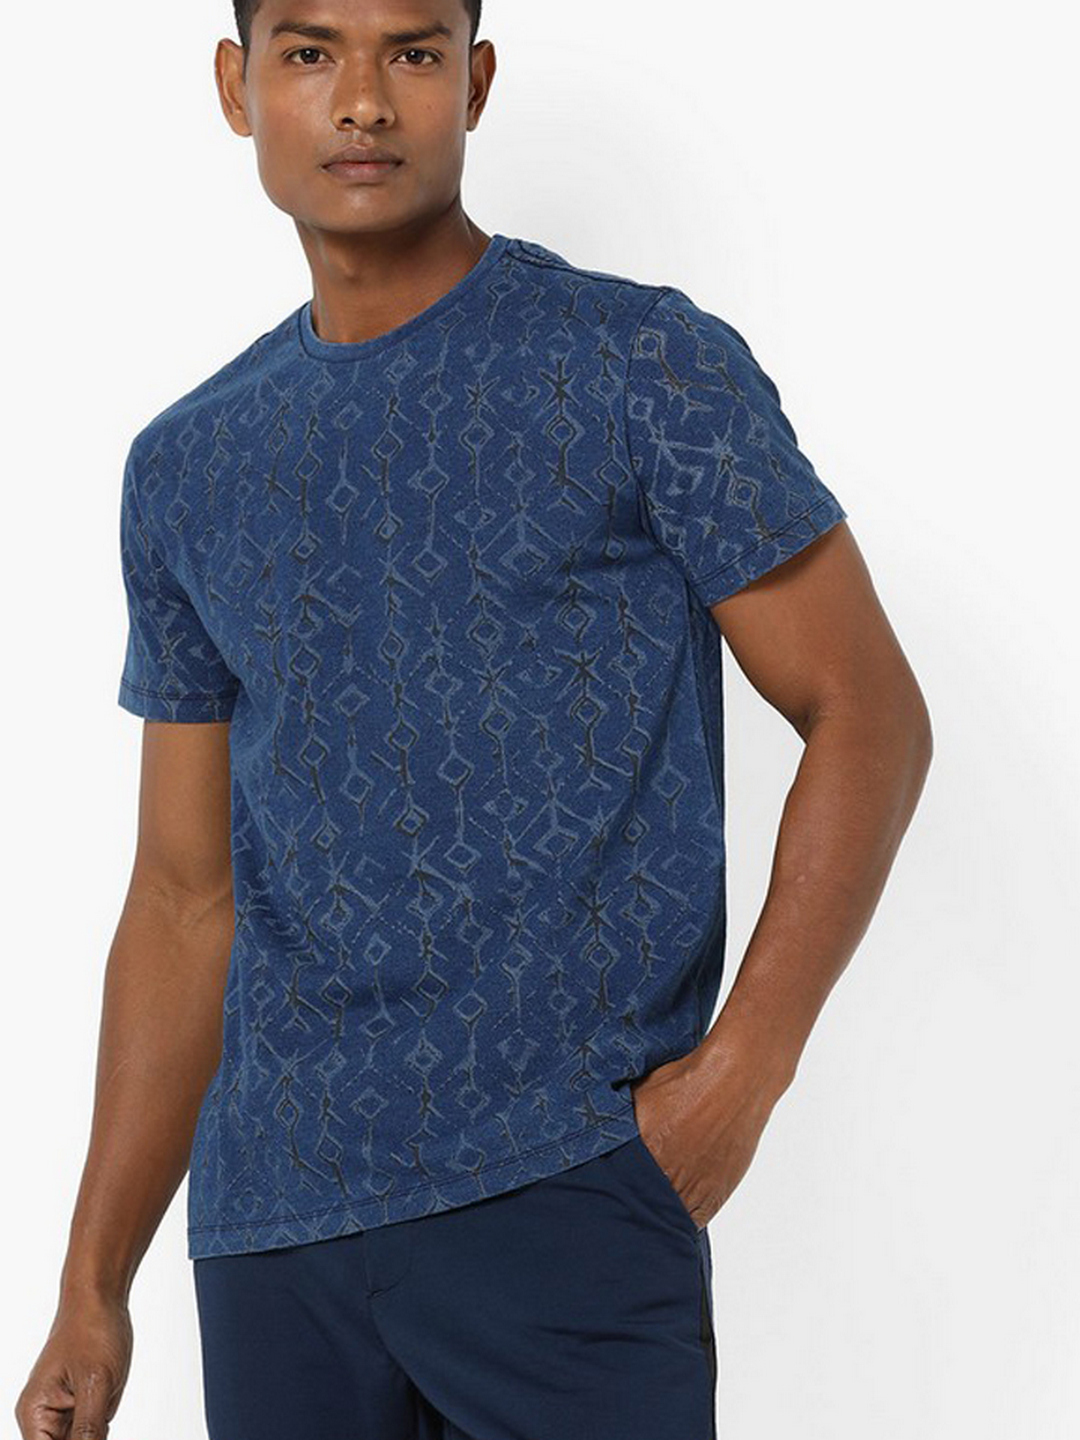 Men's Scuba geometric printed crew neck blue t-shirt